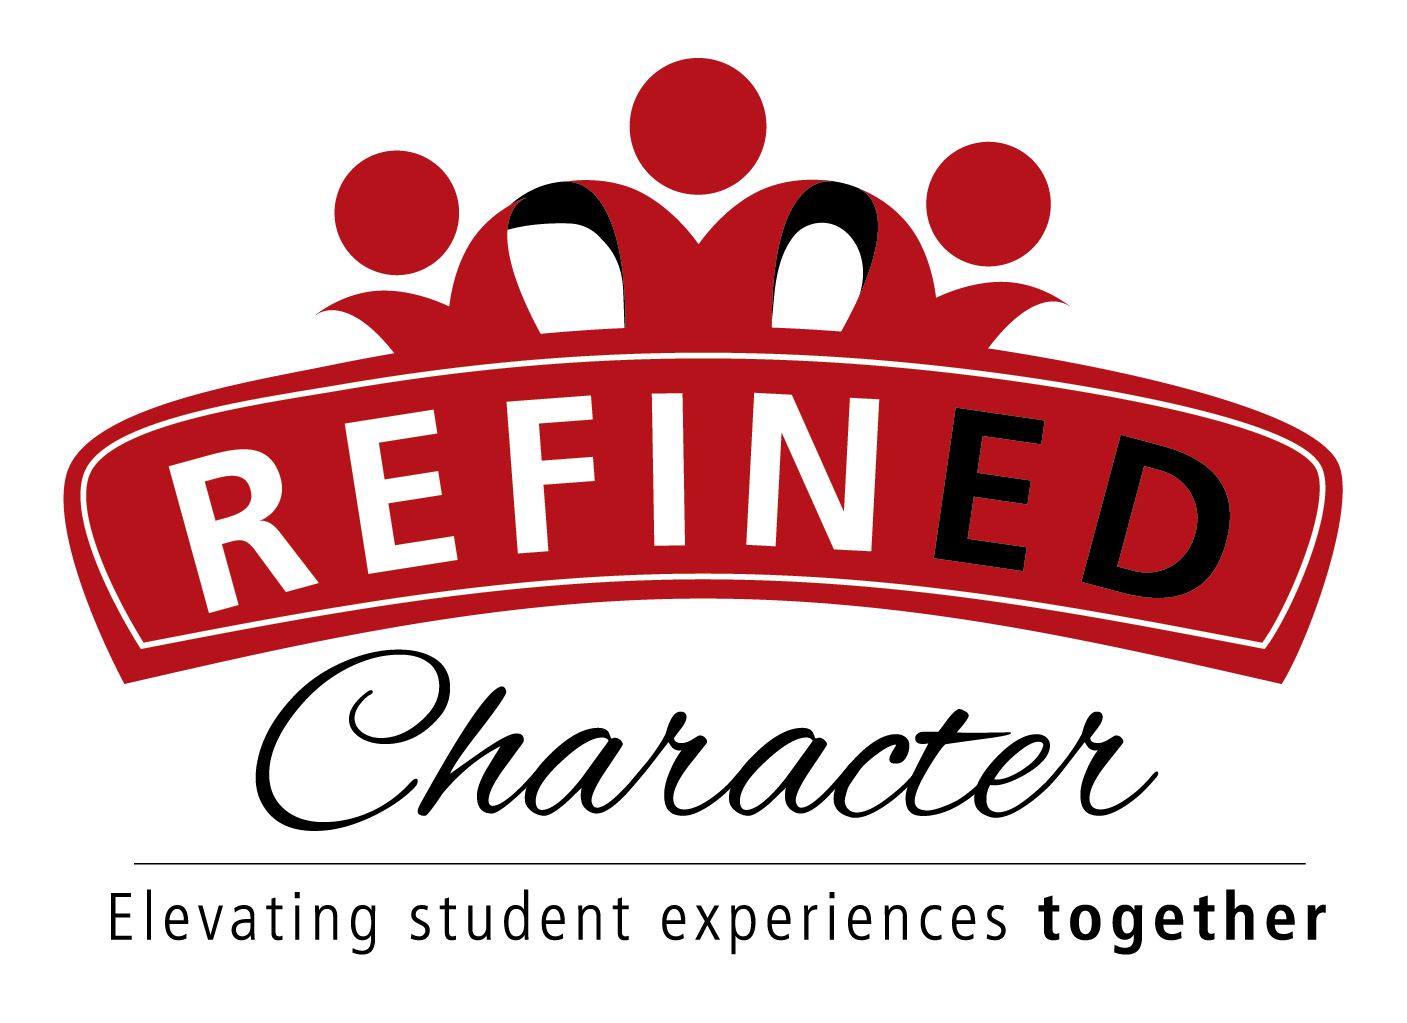 RefinED Character - Elevating the Student Experience Together